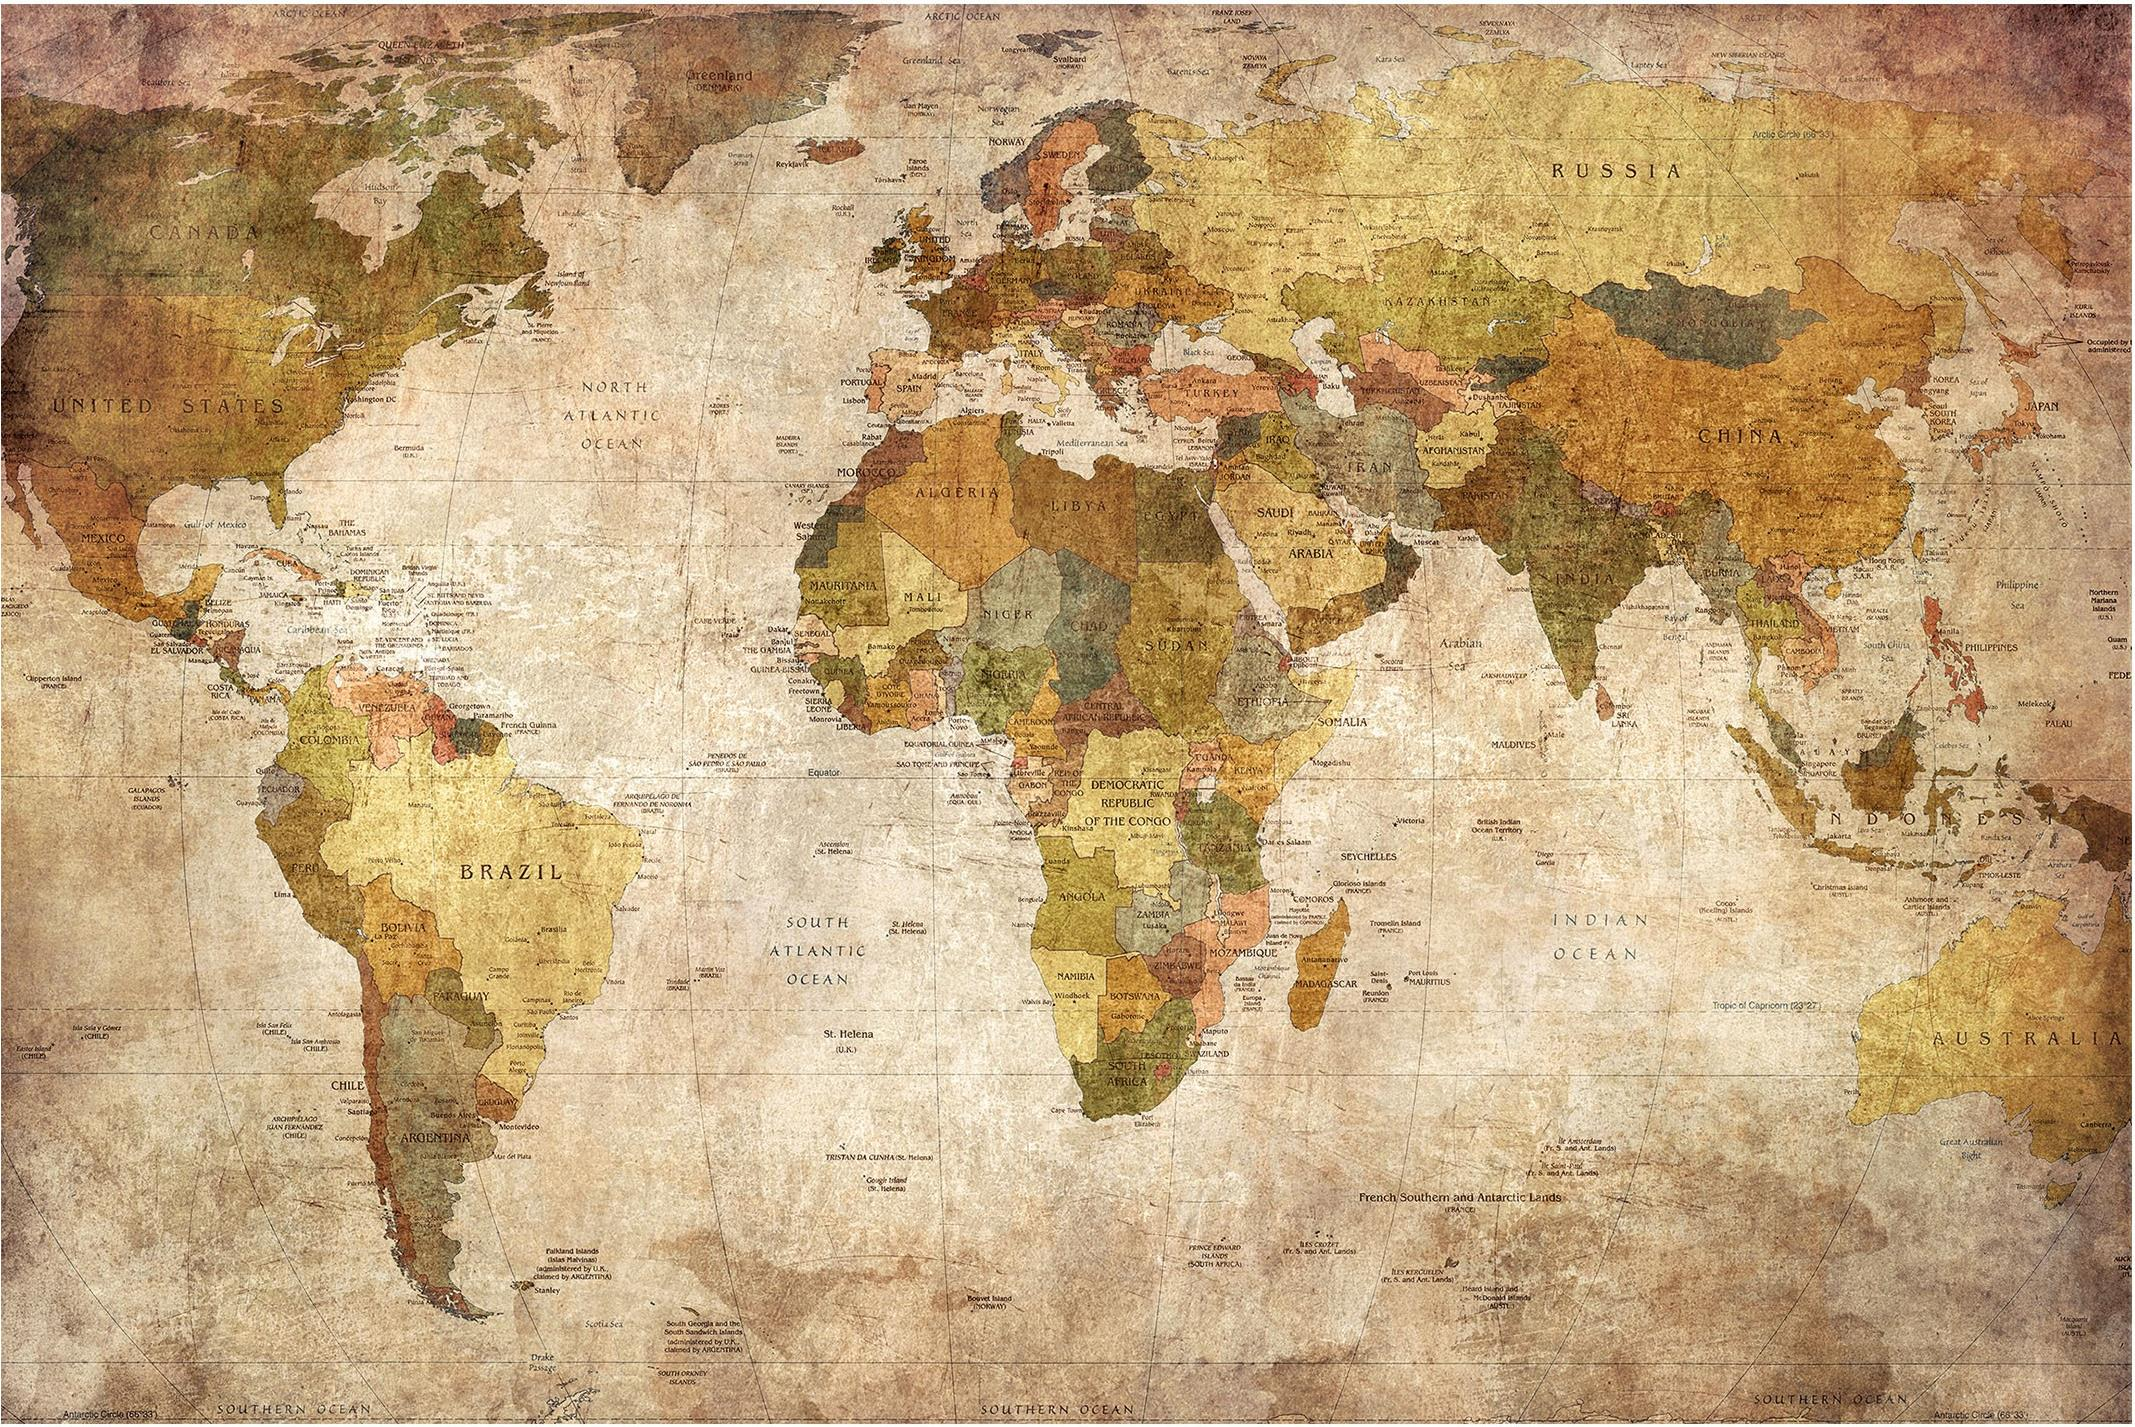 Bilderwelten Weltkarte Actual Product Image Antique Old Map Of The World 1148357 Hd Wallpaper Backgrounds Download